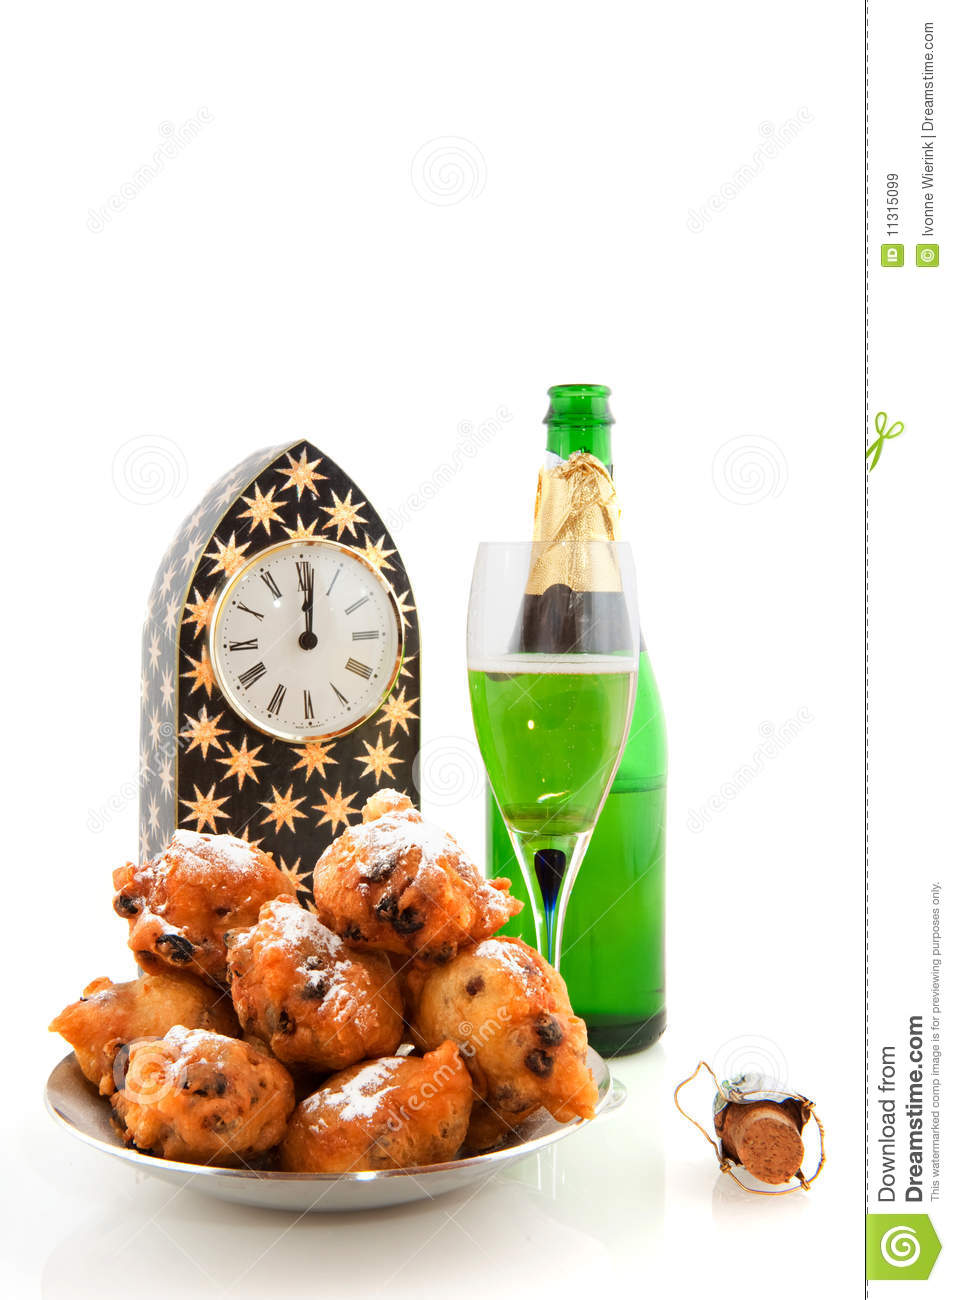 Dutch new years eve stock image. Image of bowl, alcohol ...